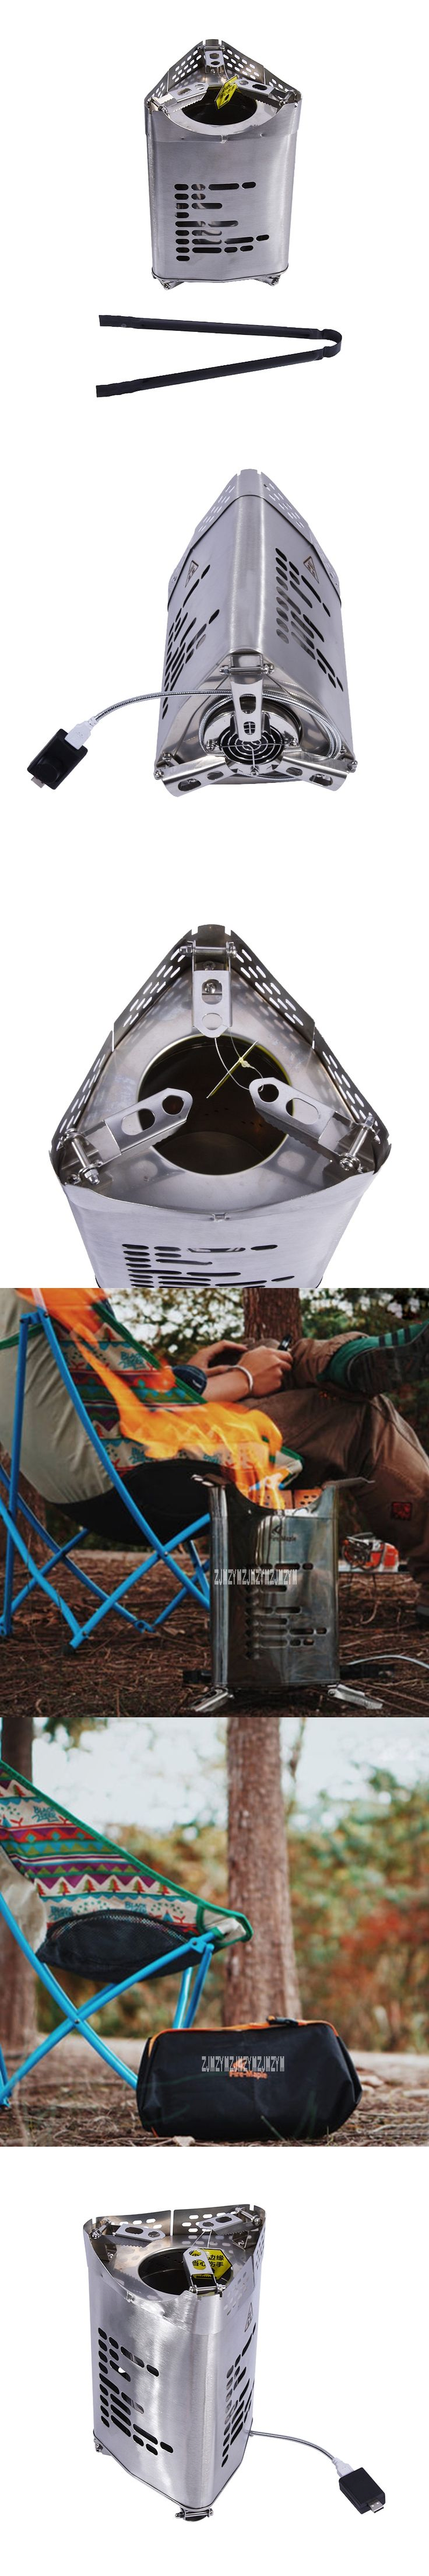 New Arrival 1.5L Camping Folding Wood Stove Charcoal Burner Blower Stove Outdoor Firewood Stove BBQ Furnace FMS-1301001 Hot Sale